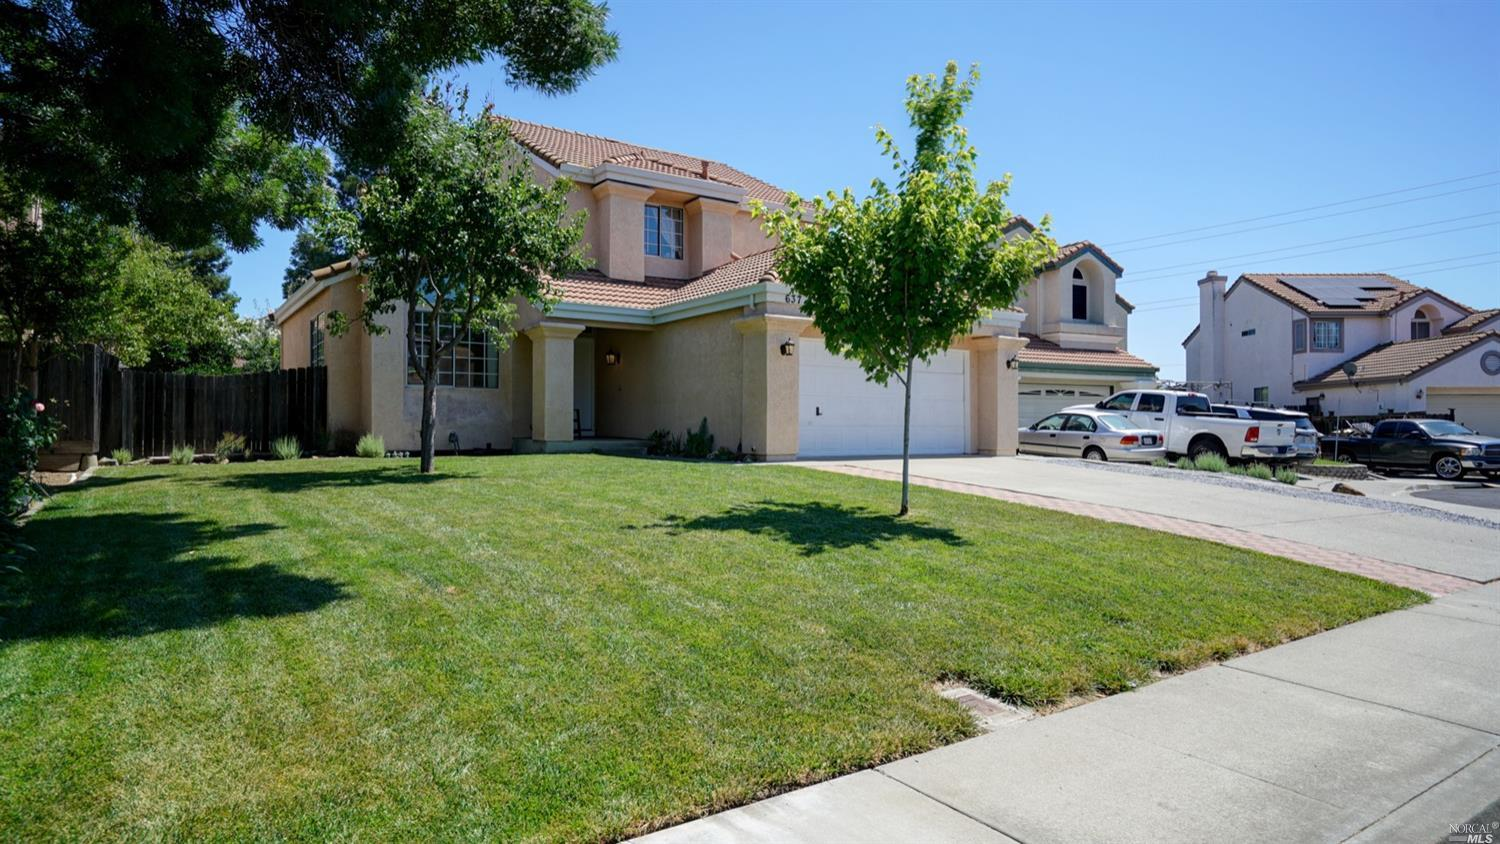 637 Roscommon Place Vacaville, California 95688, 4 Bedrooms Bedrooms, ,3 BathroomsBathrooms,Residential,For Sale,637 Roscommon,21916118